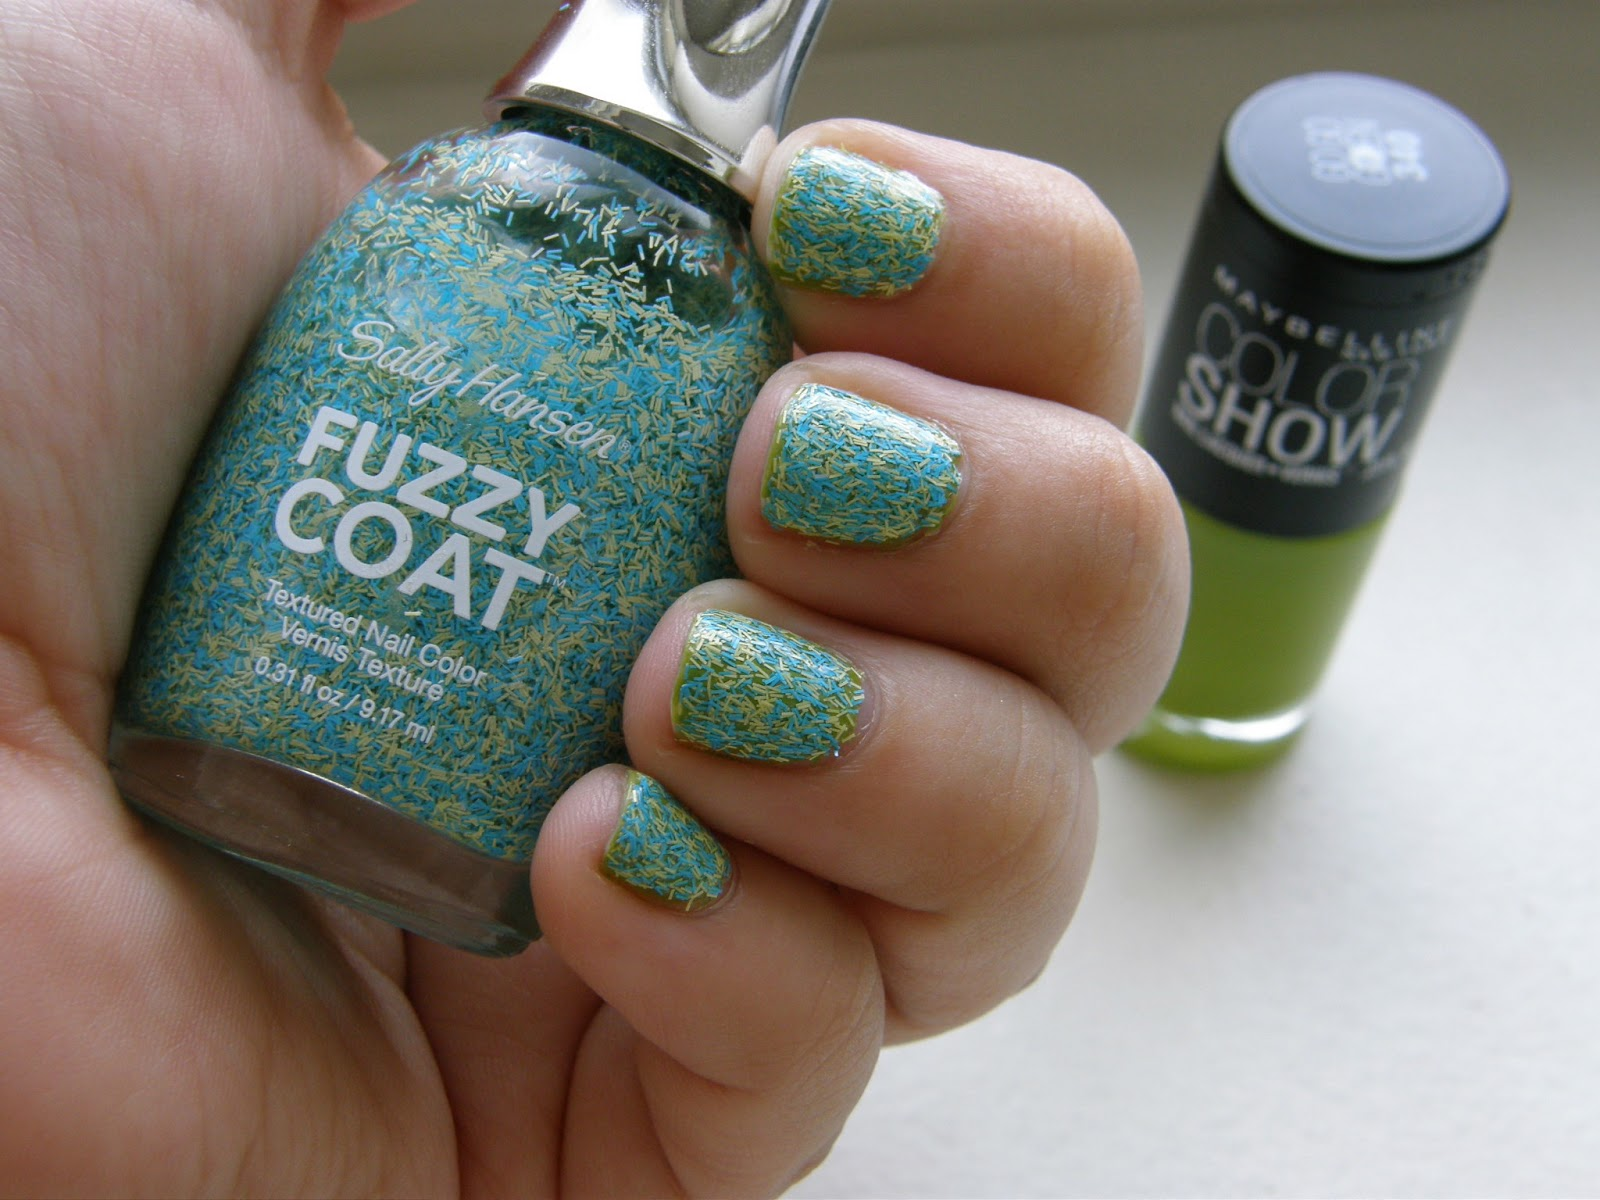 Thrift Thick: NOTD²: Sally Hansen Fuzzy Coat Textured Nail Colors ...